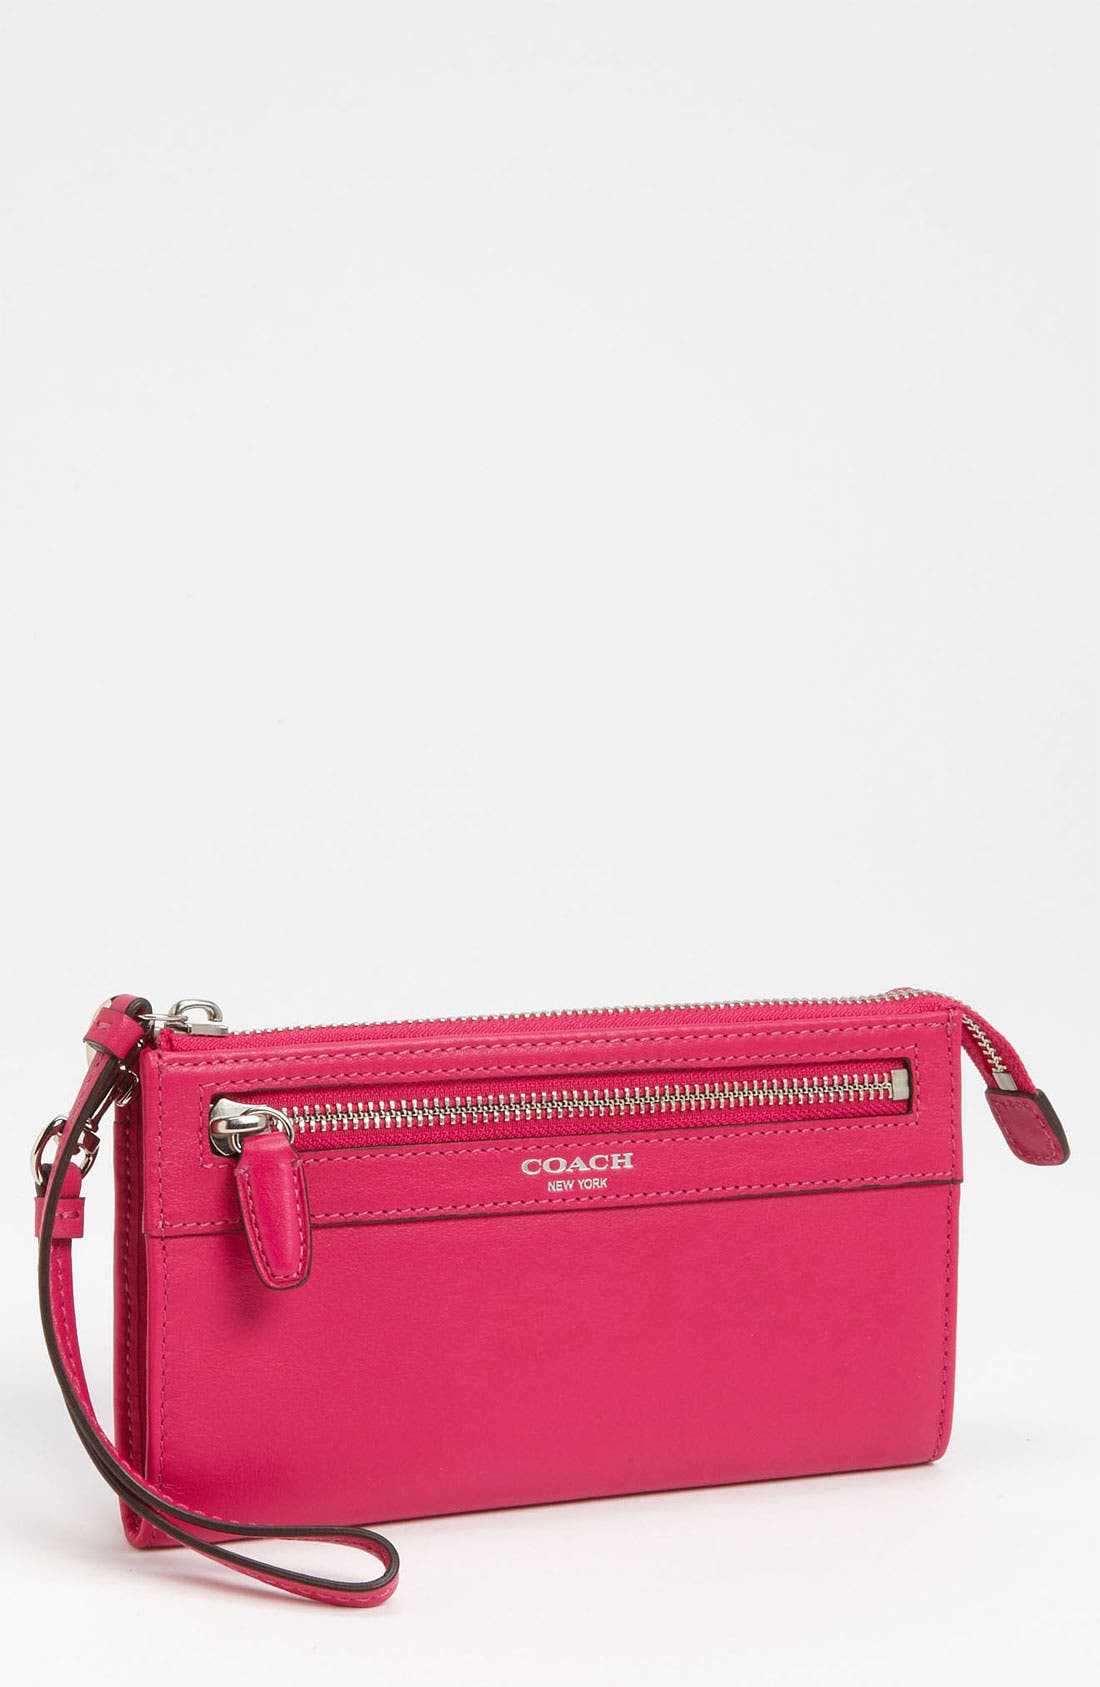 Main Image - COACH 'Legacy - Zippy' Leather Wallet